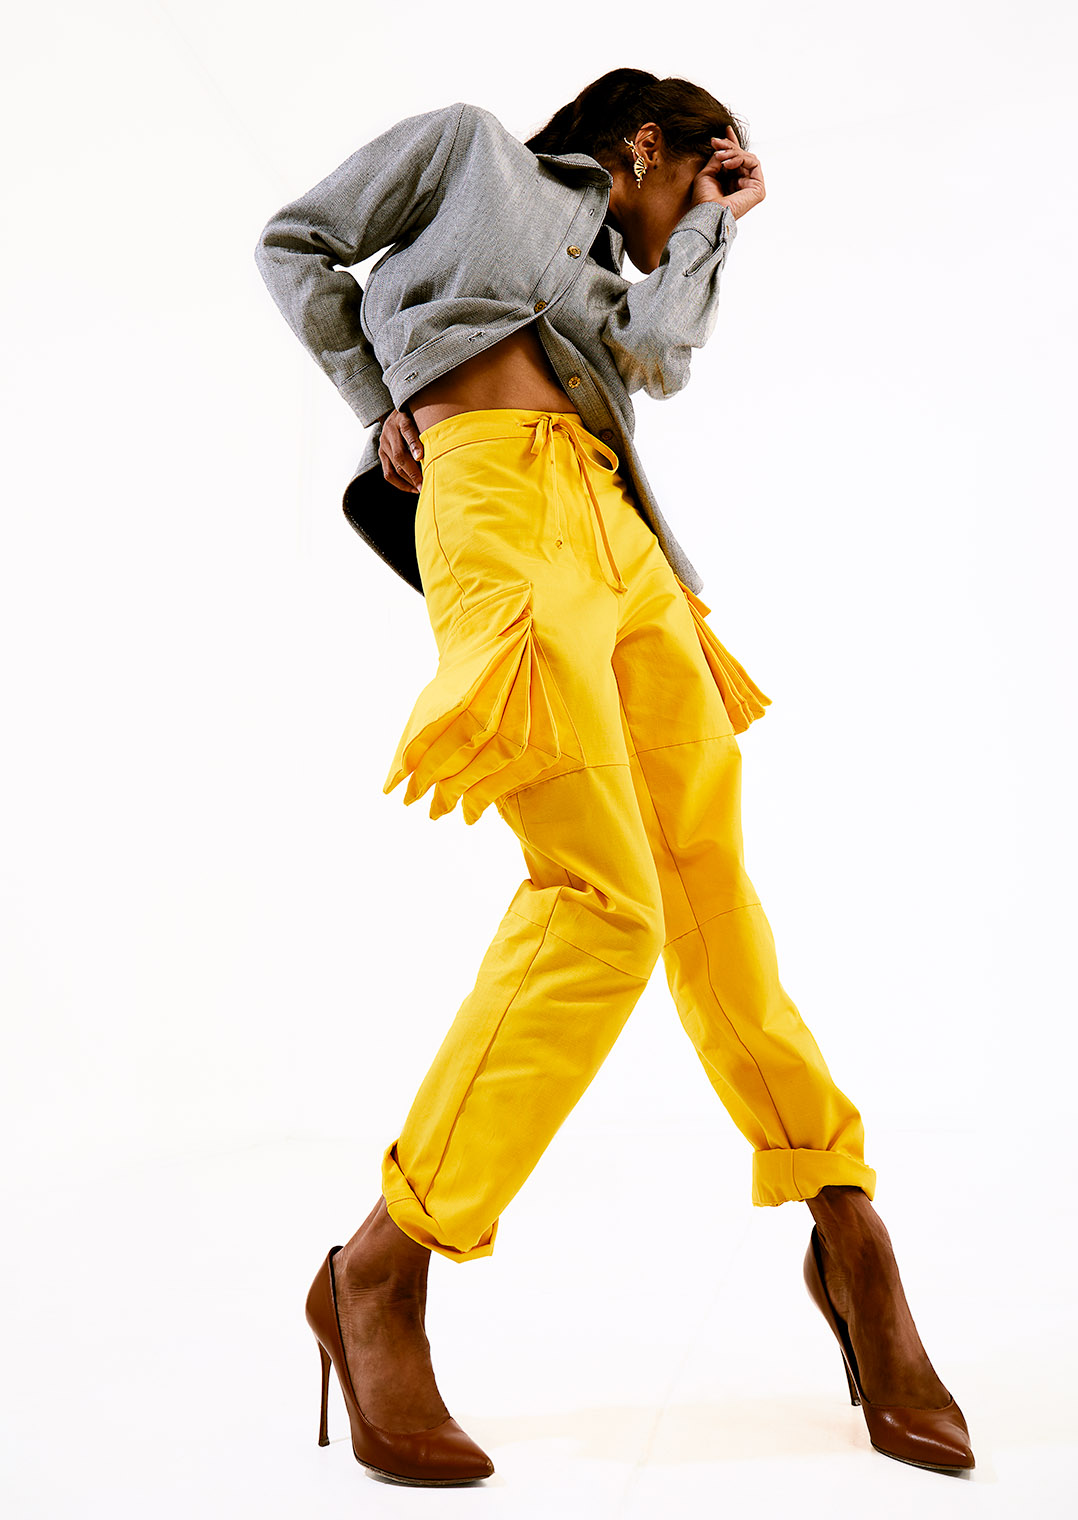 Primaballerina in dynamic dancing pose performing women's fashion in photography studio, yellow cargo pants, gray jacket